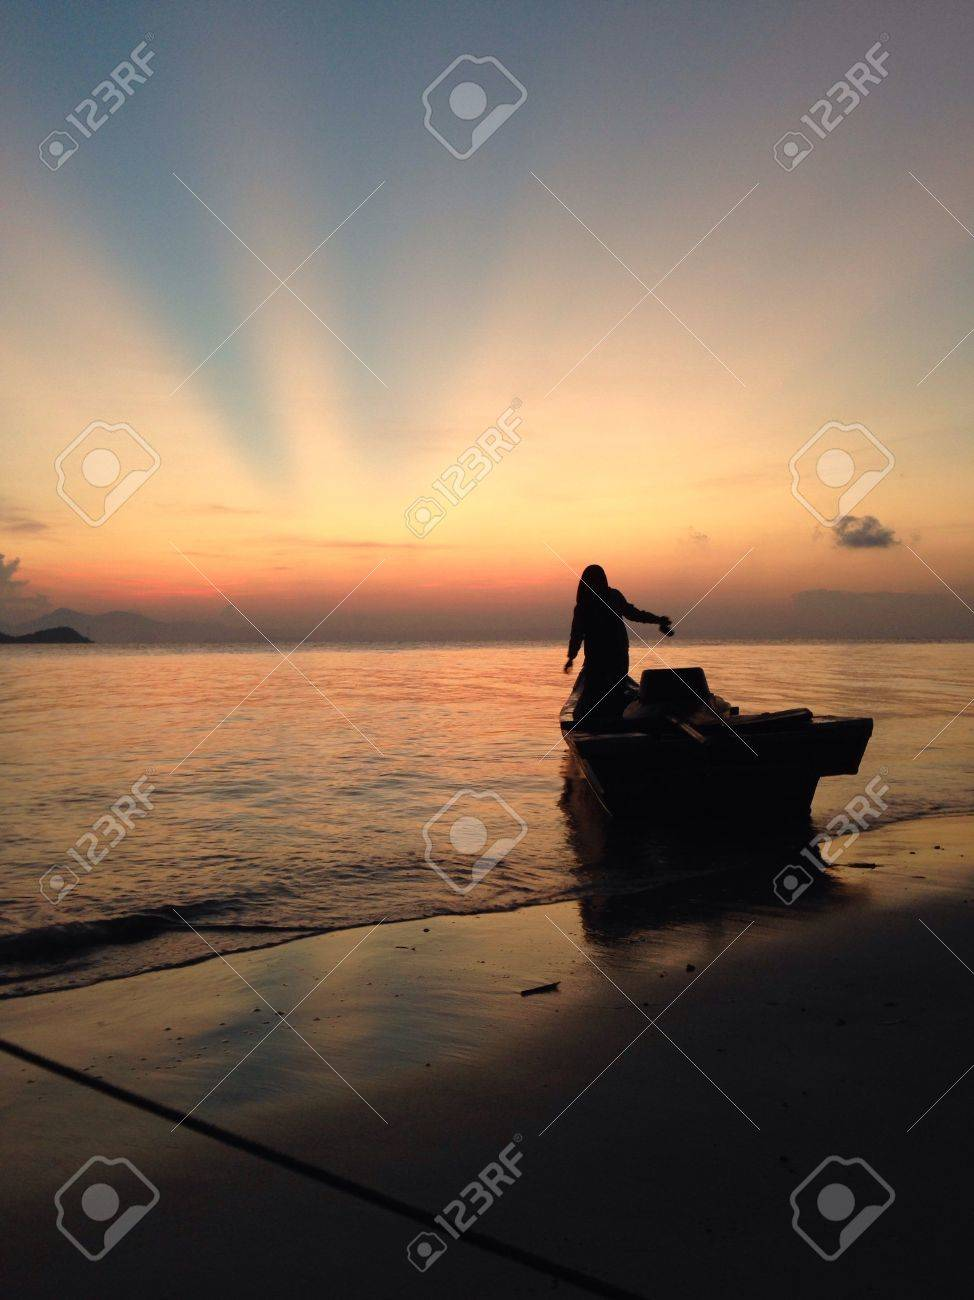 a woman standing on a boat eagerly waiting for the sunrise stock